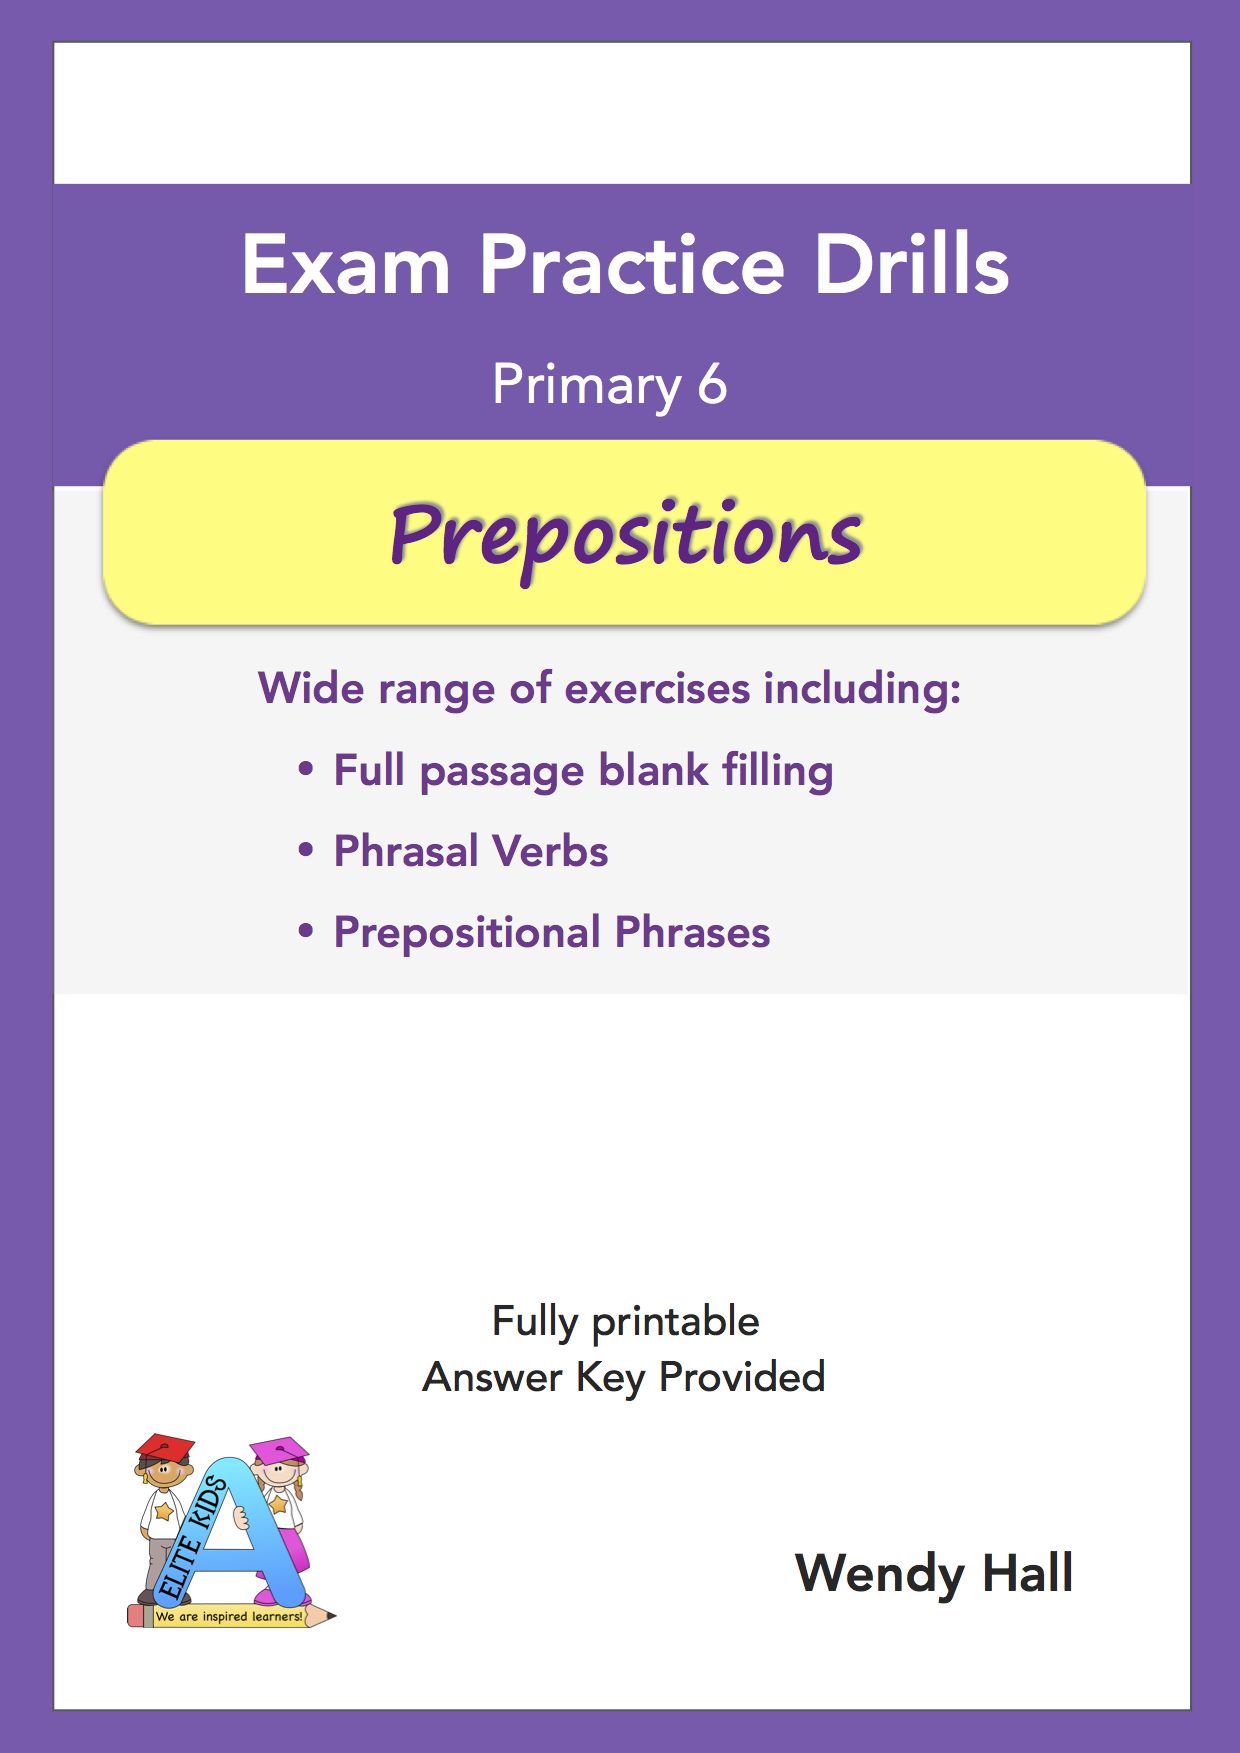 Elite Kids | Exam Practice Drills - Prepositions - Primary 6